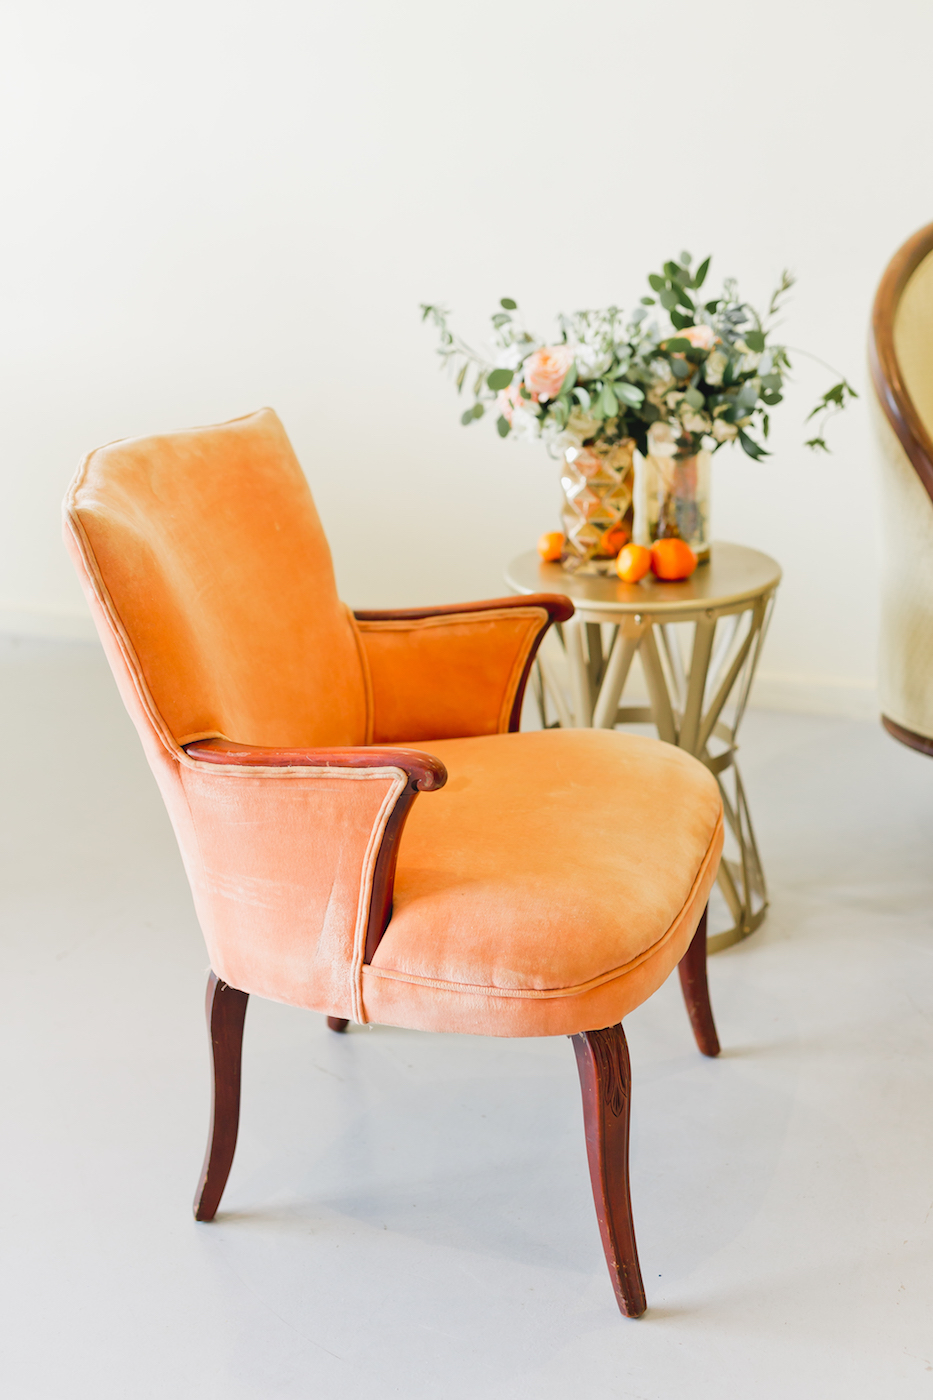 Lounge Furniture for Wedding Receptions: How Much Does It ...